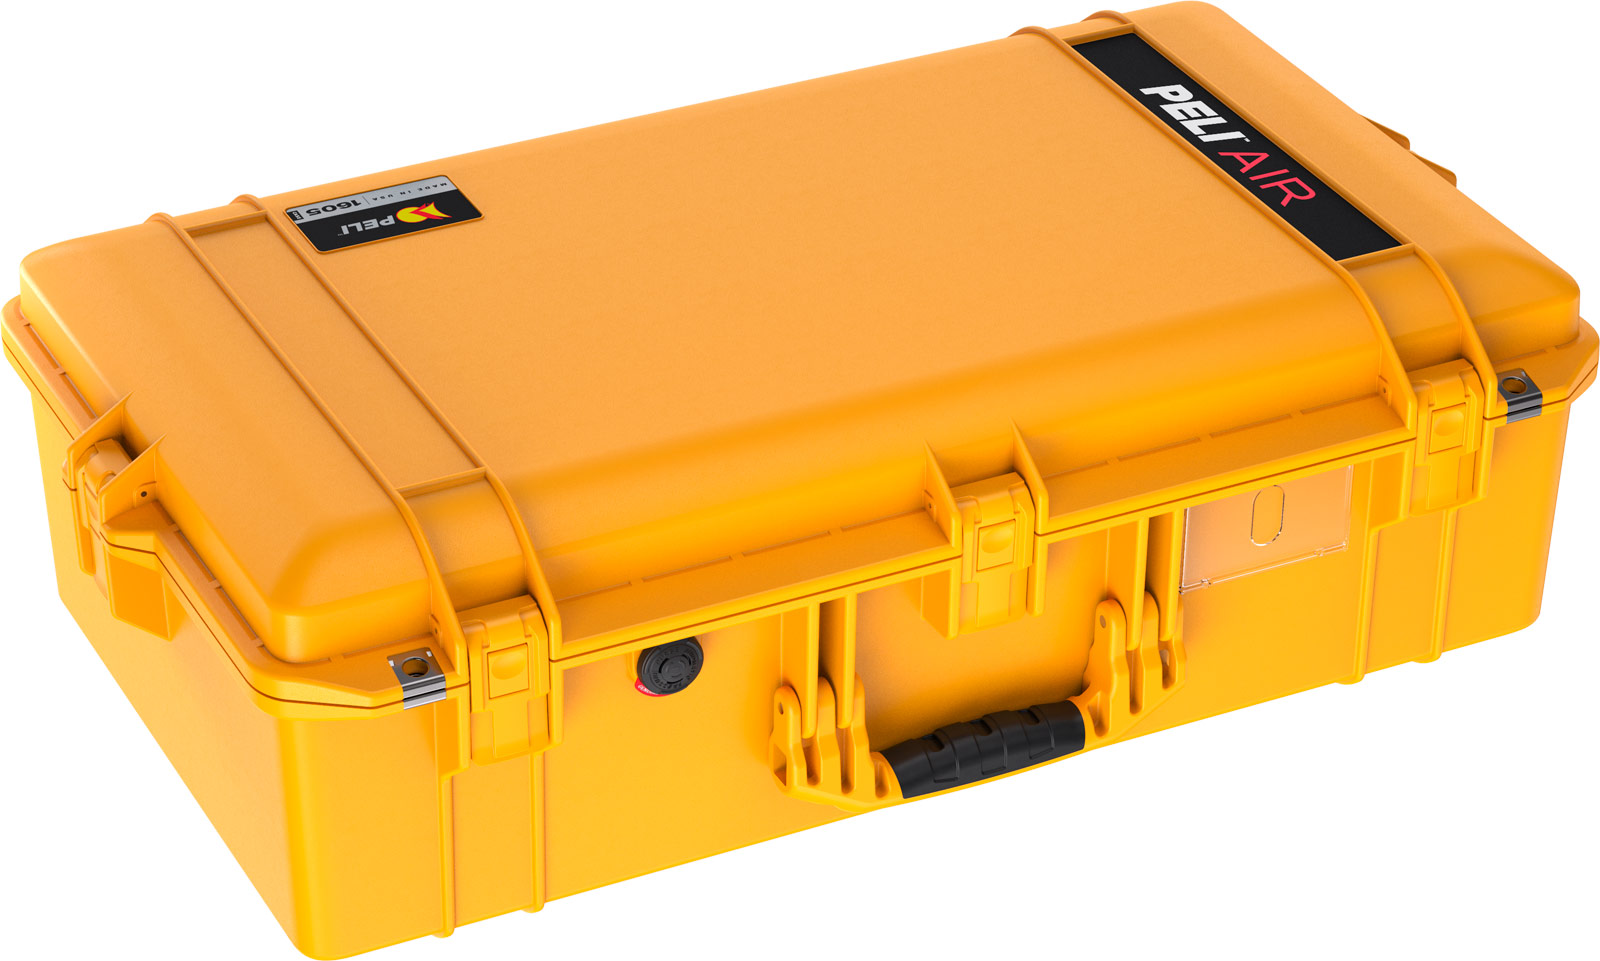 pelican 1605 air cases colors yellow case